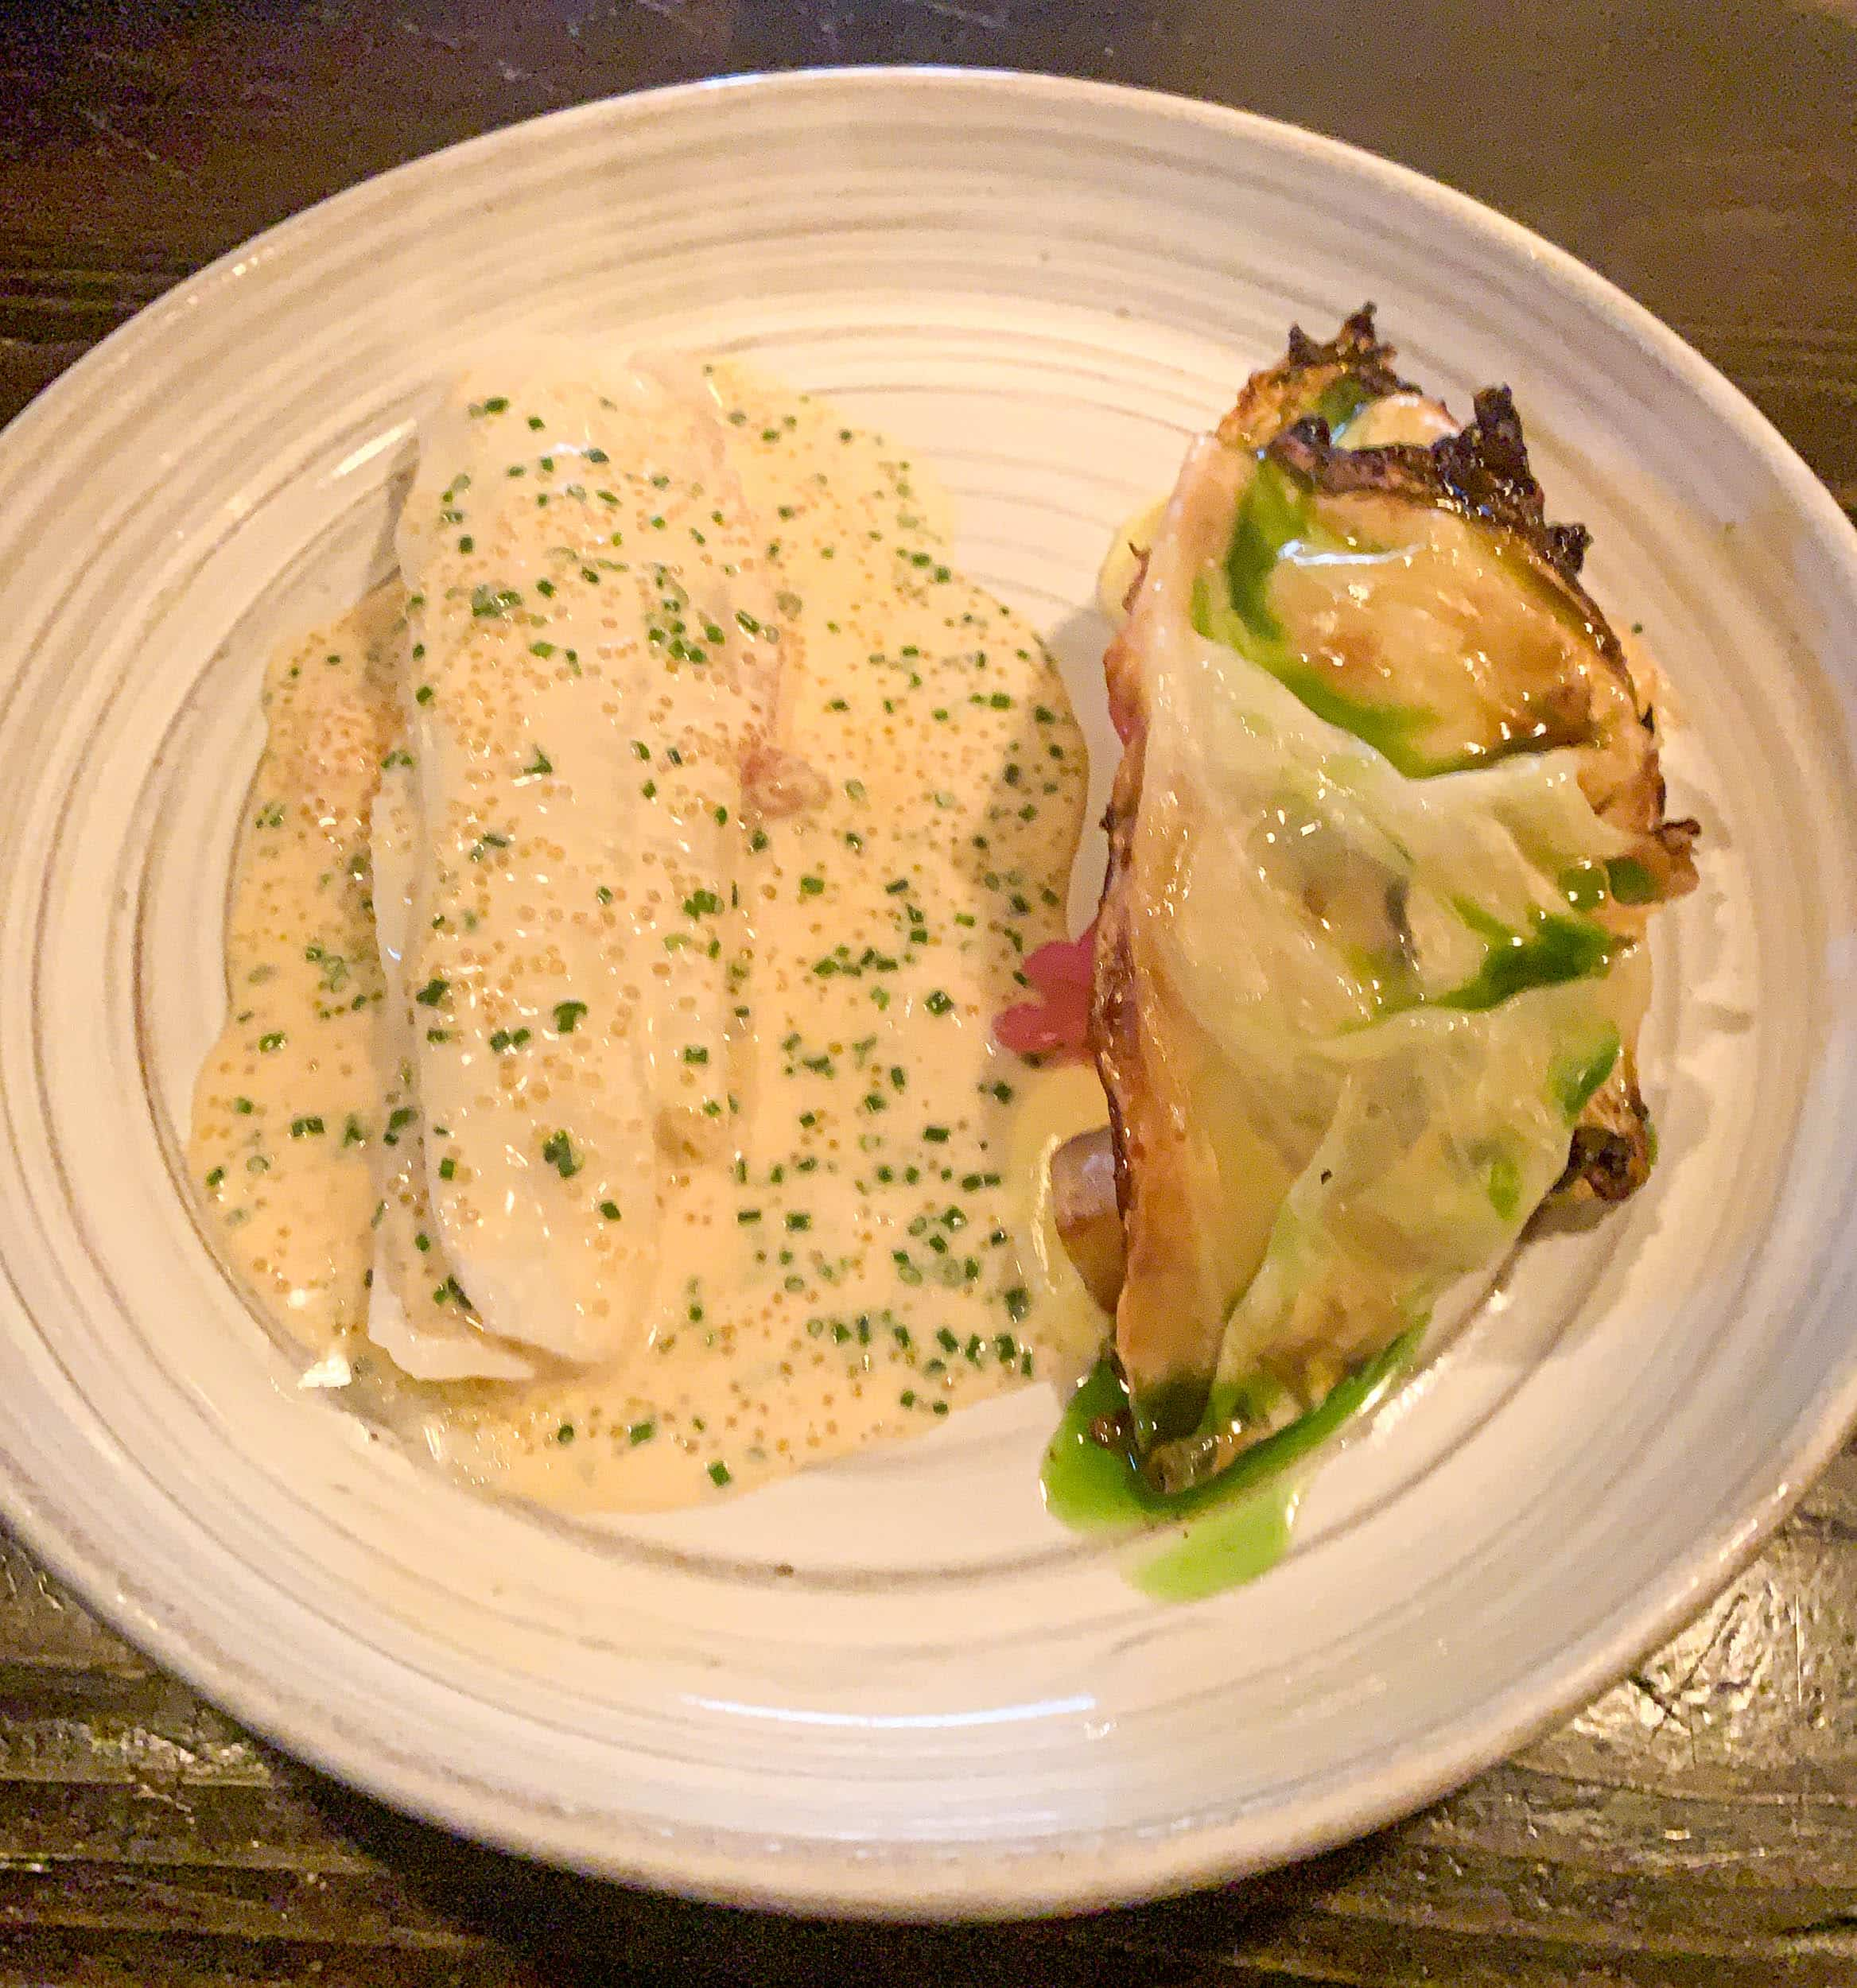 Lemon sole with a cream of aged cheese, celeriac, roasted cabbage, and a smoked clam butter sauce with bleak roe at Restaurang Natur in Gothenburg, Sweden